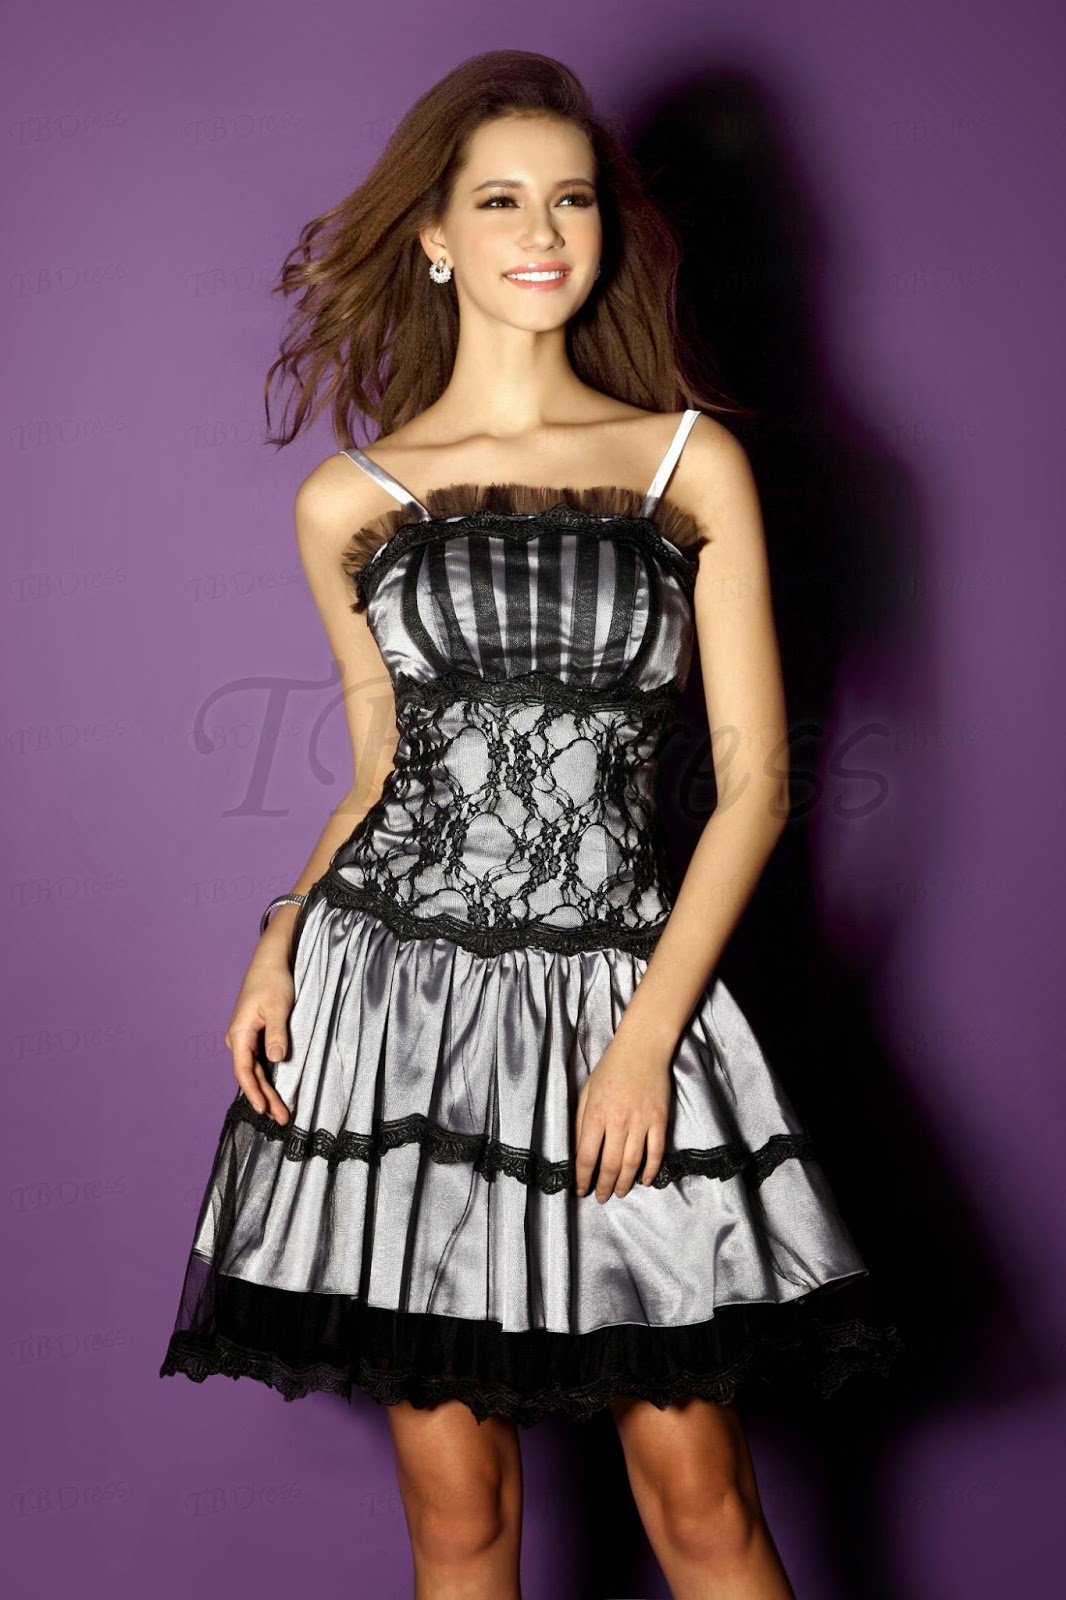 http://www.tbdress.com/product/Charming-A-Line-Mini-Short-Spaghetti-Straps-Sandras-Prom-Homecoming-Dress-9690835.html